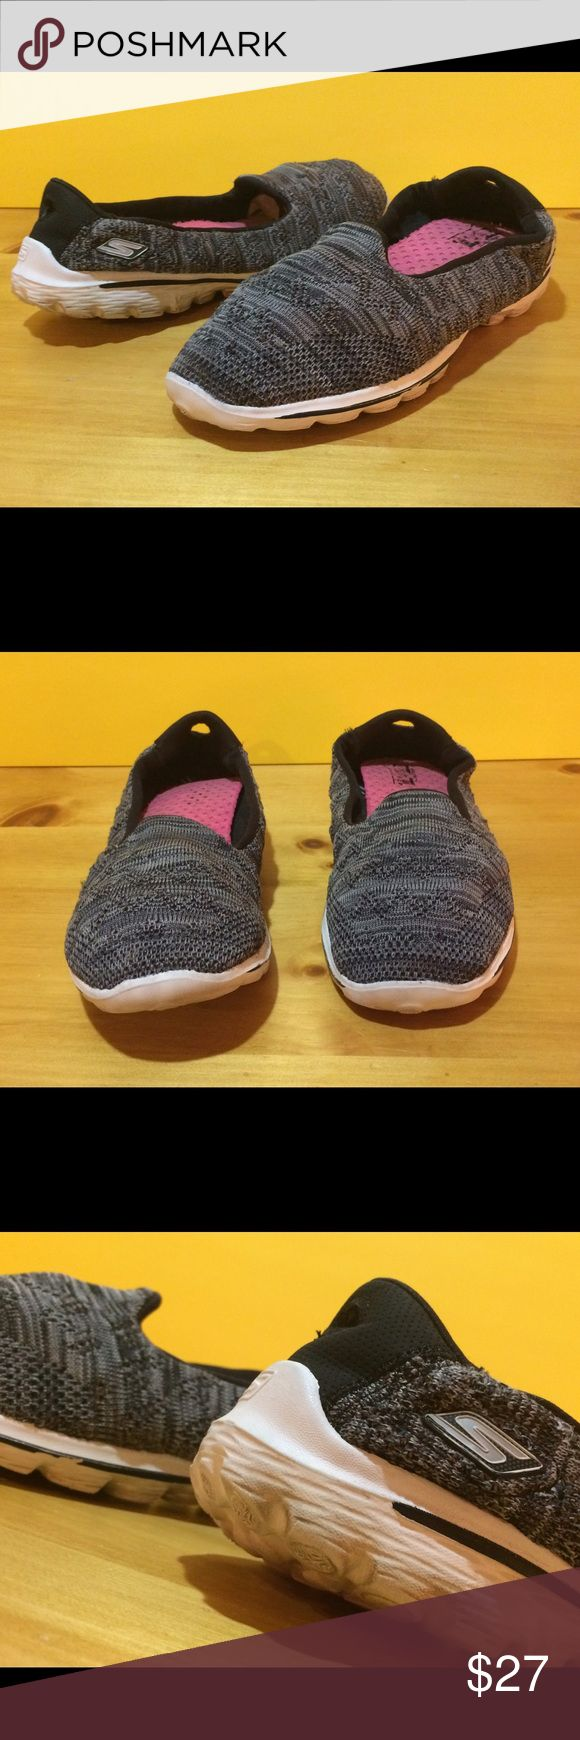 Women's Size 8.5 Black Skechers Slip On Shoes Women's size 8.5 black & white Skechers slip on shoes. See photos and please message with any questions! :) Skechers Shoes Sneakers